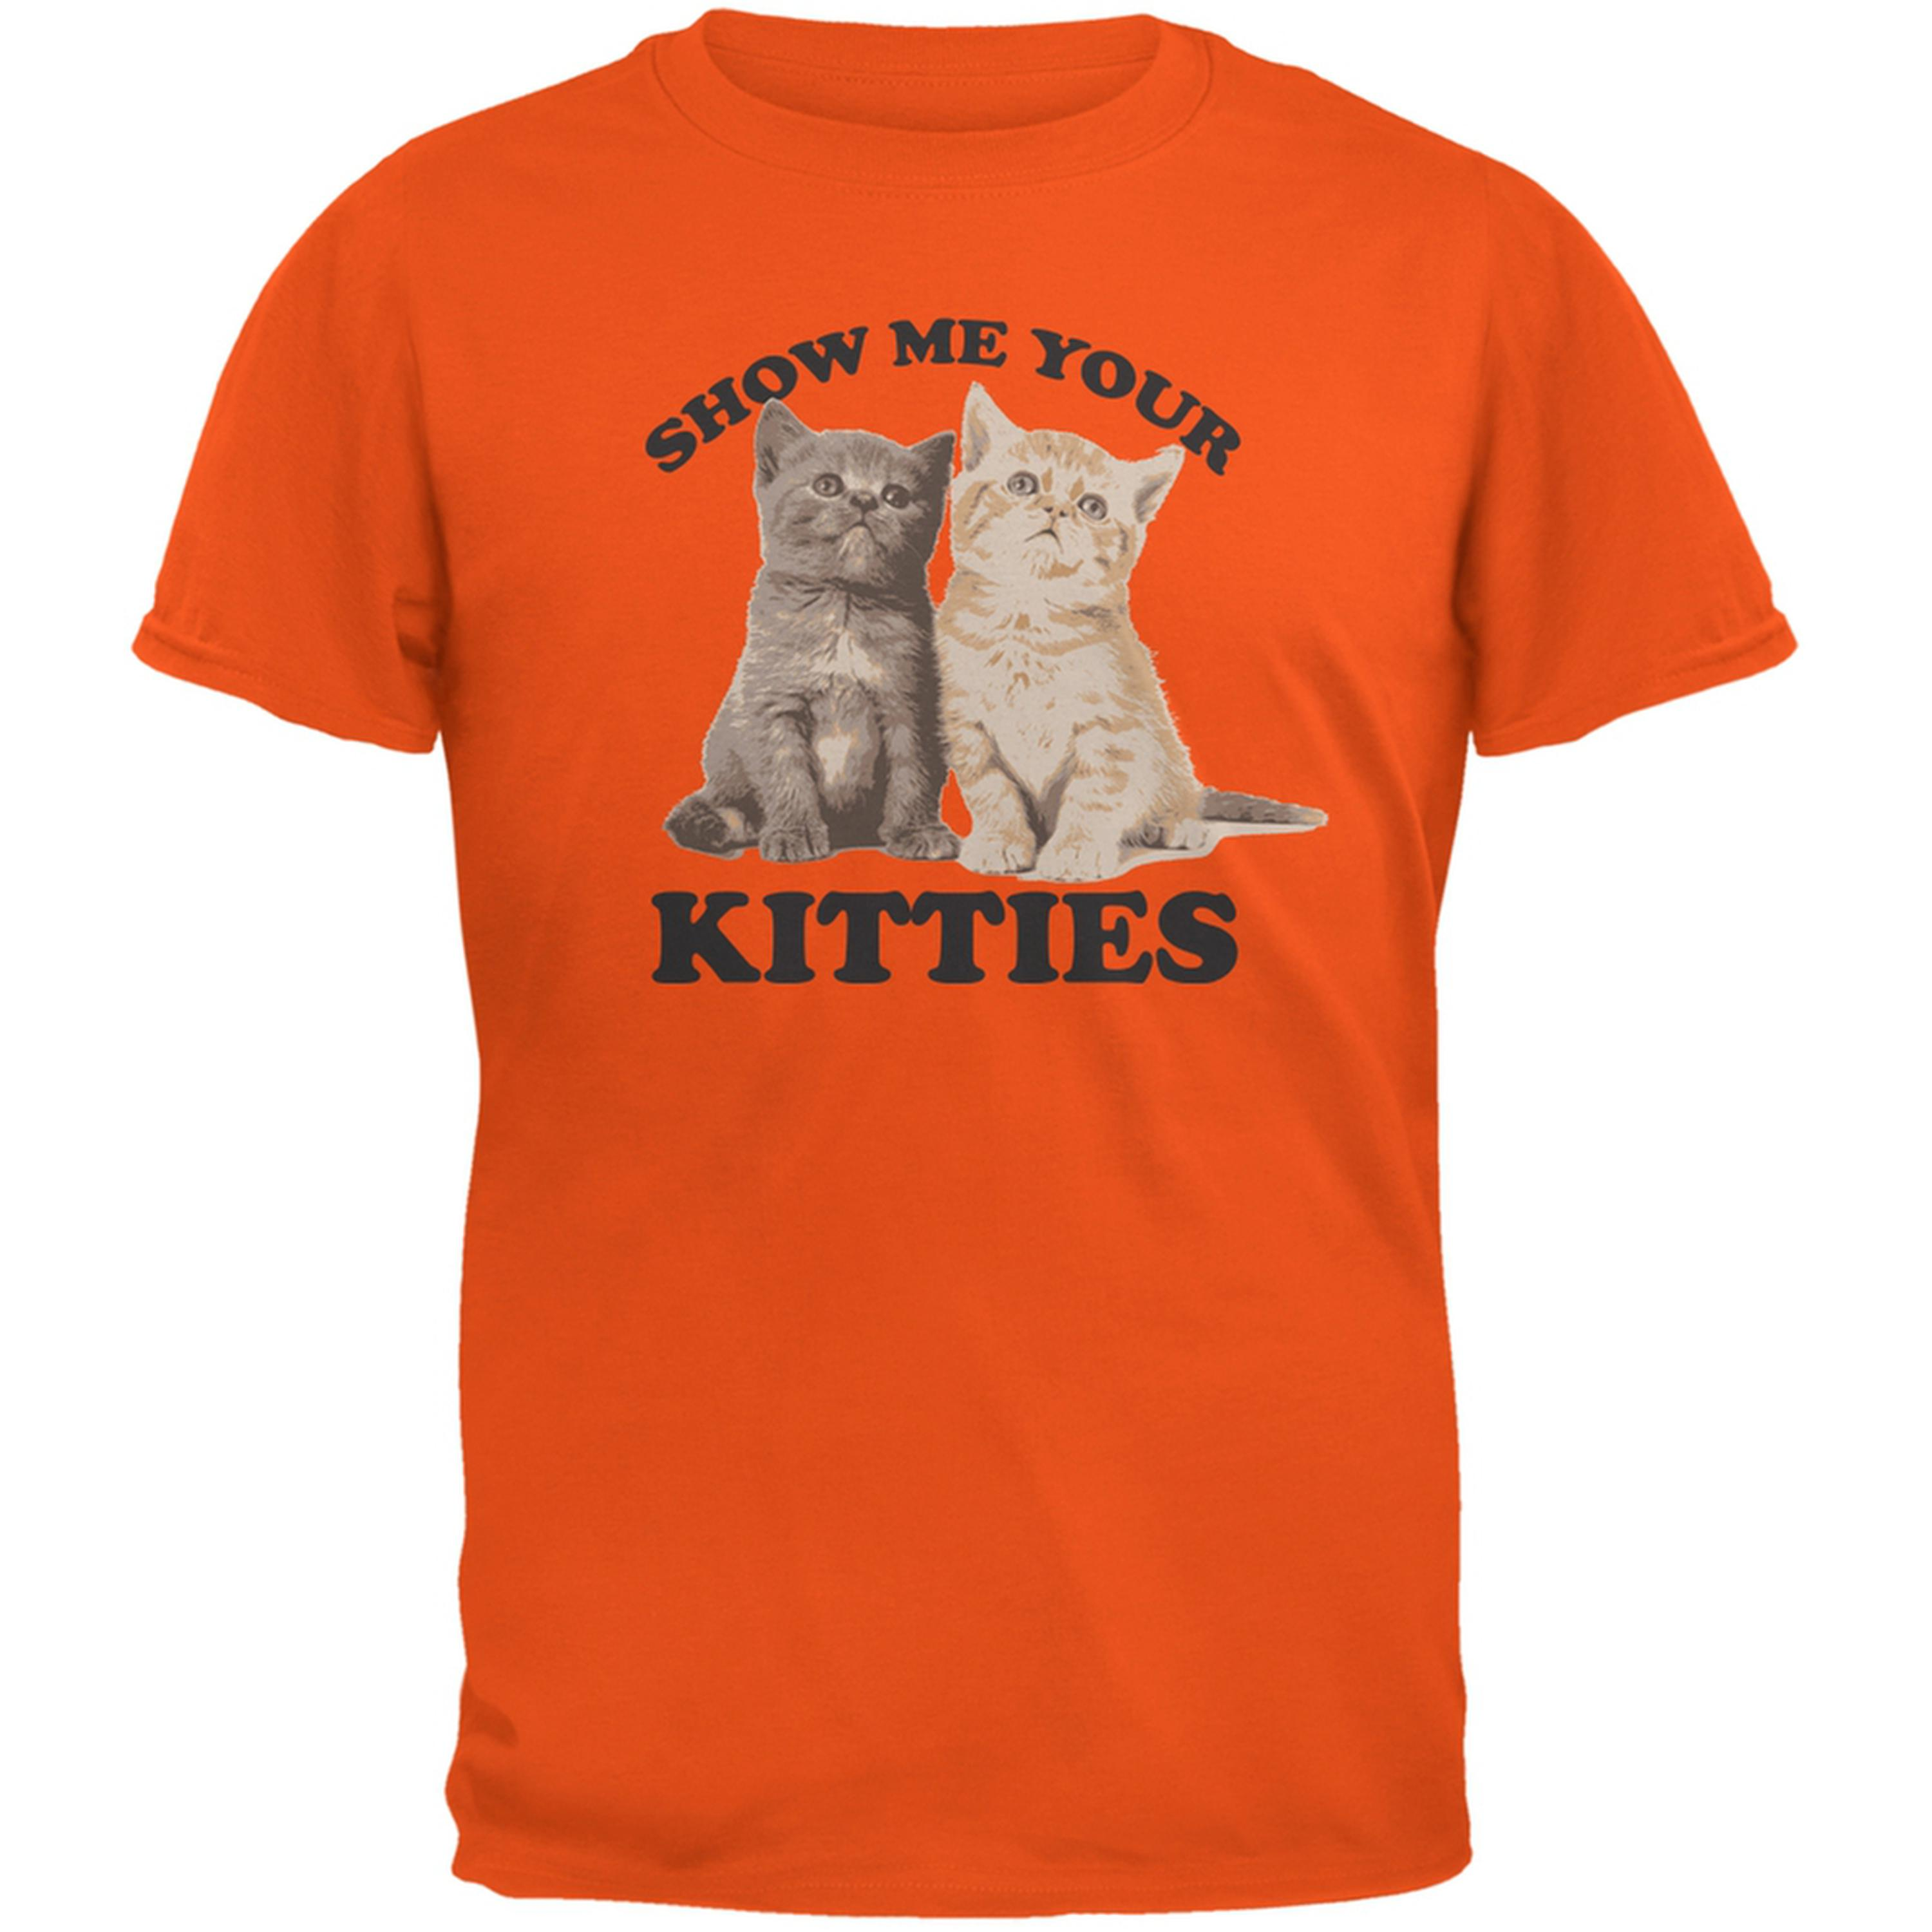 Show Me Your Kitties Orange Adult T-Shirt